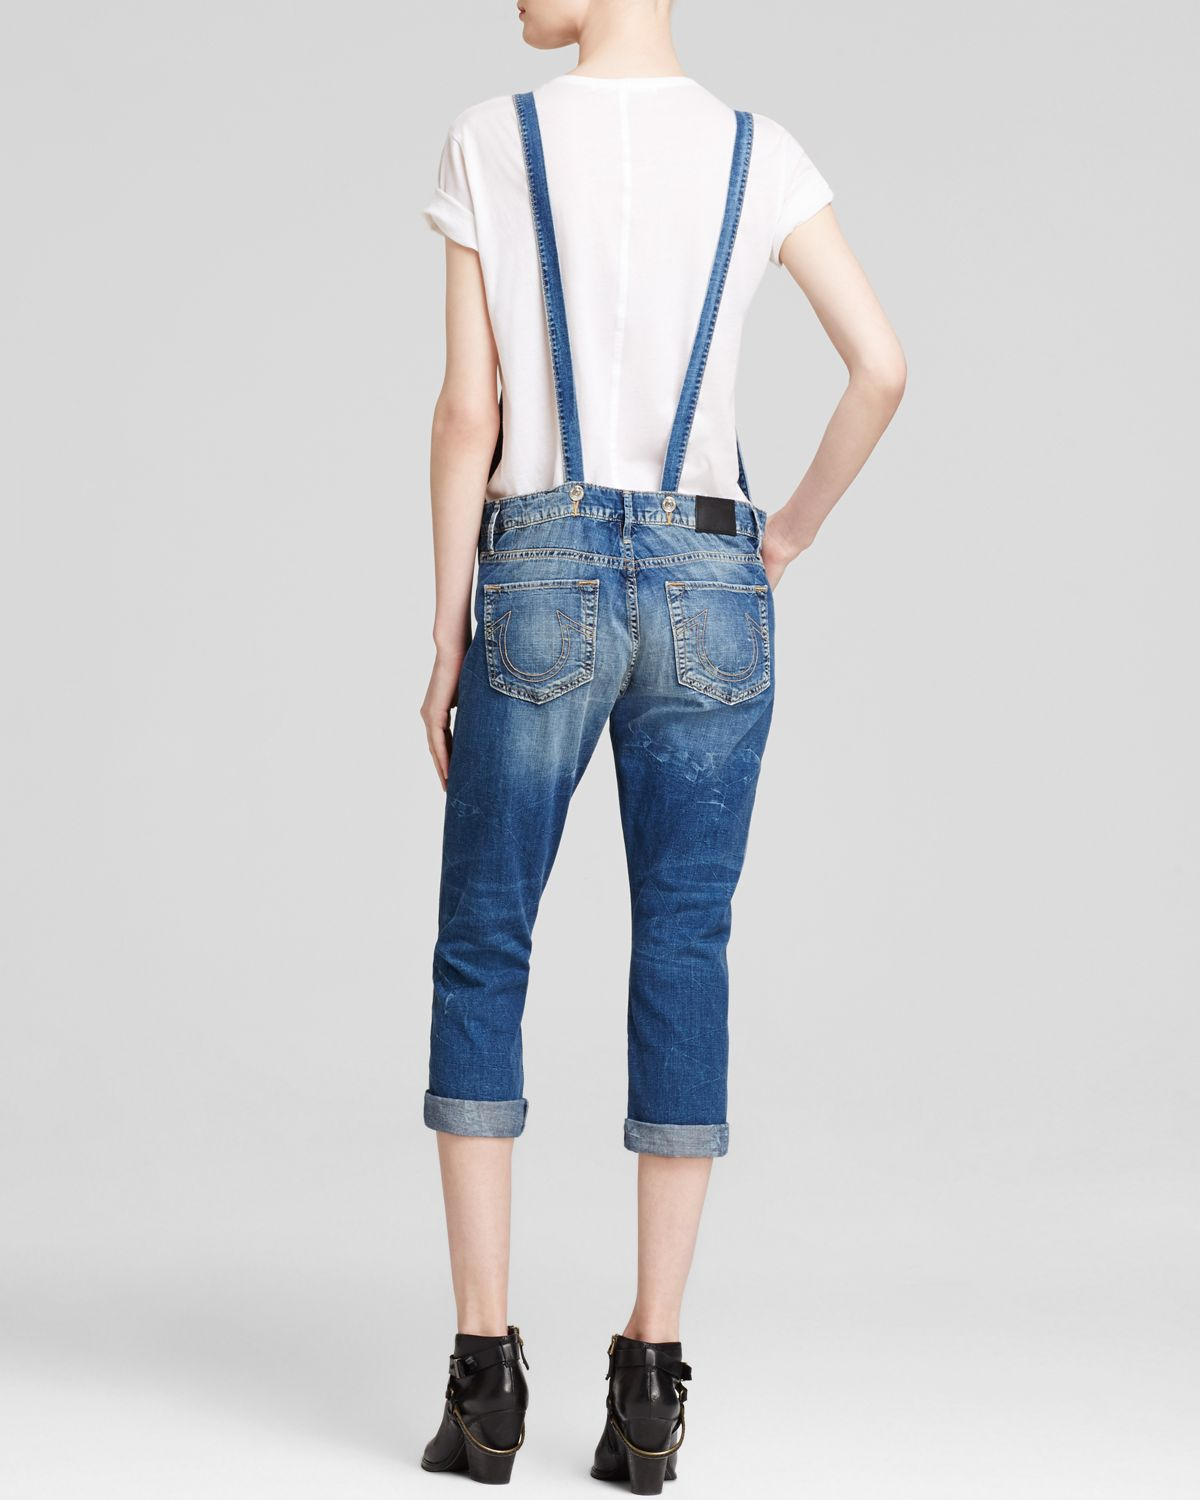 667eefd4dc9c True Religion Overalls - Katie Cropped In Marin Harbor In Metallic